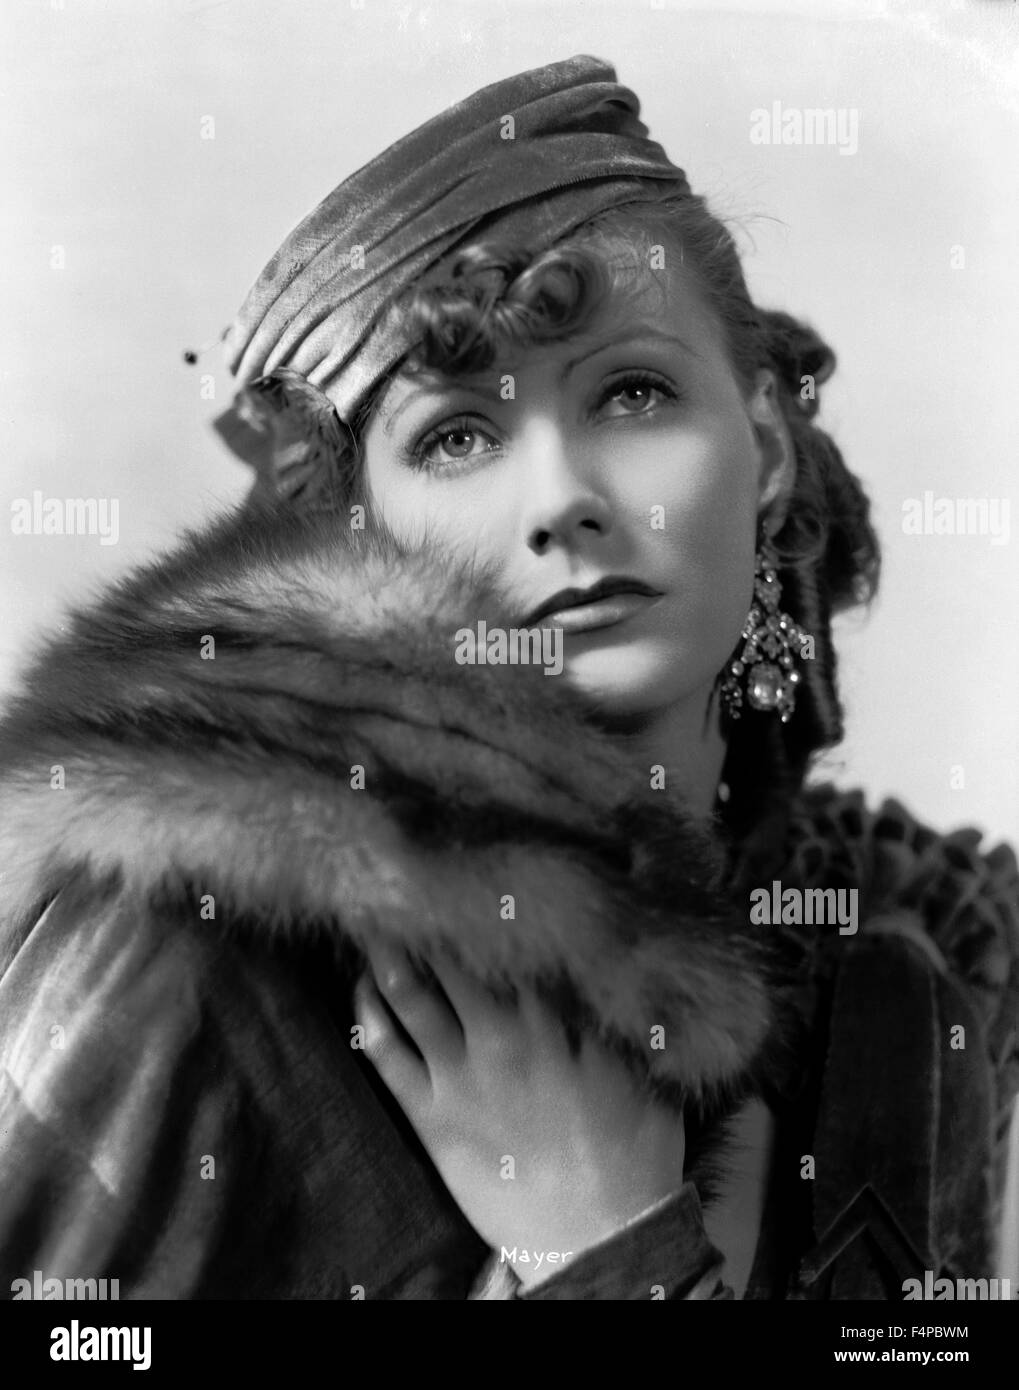 Greta Garbo / Romance 1930 directed by Clarence Brown - Stock Image